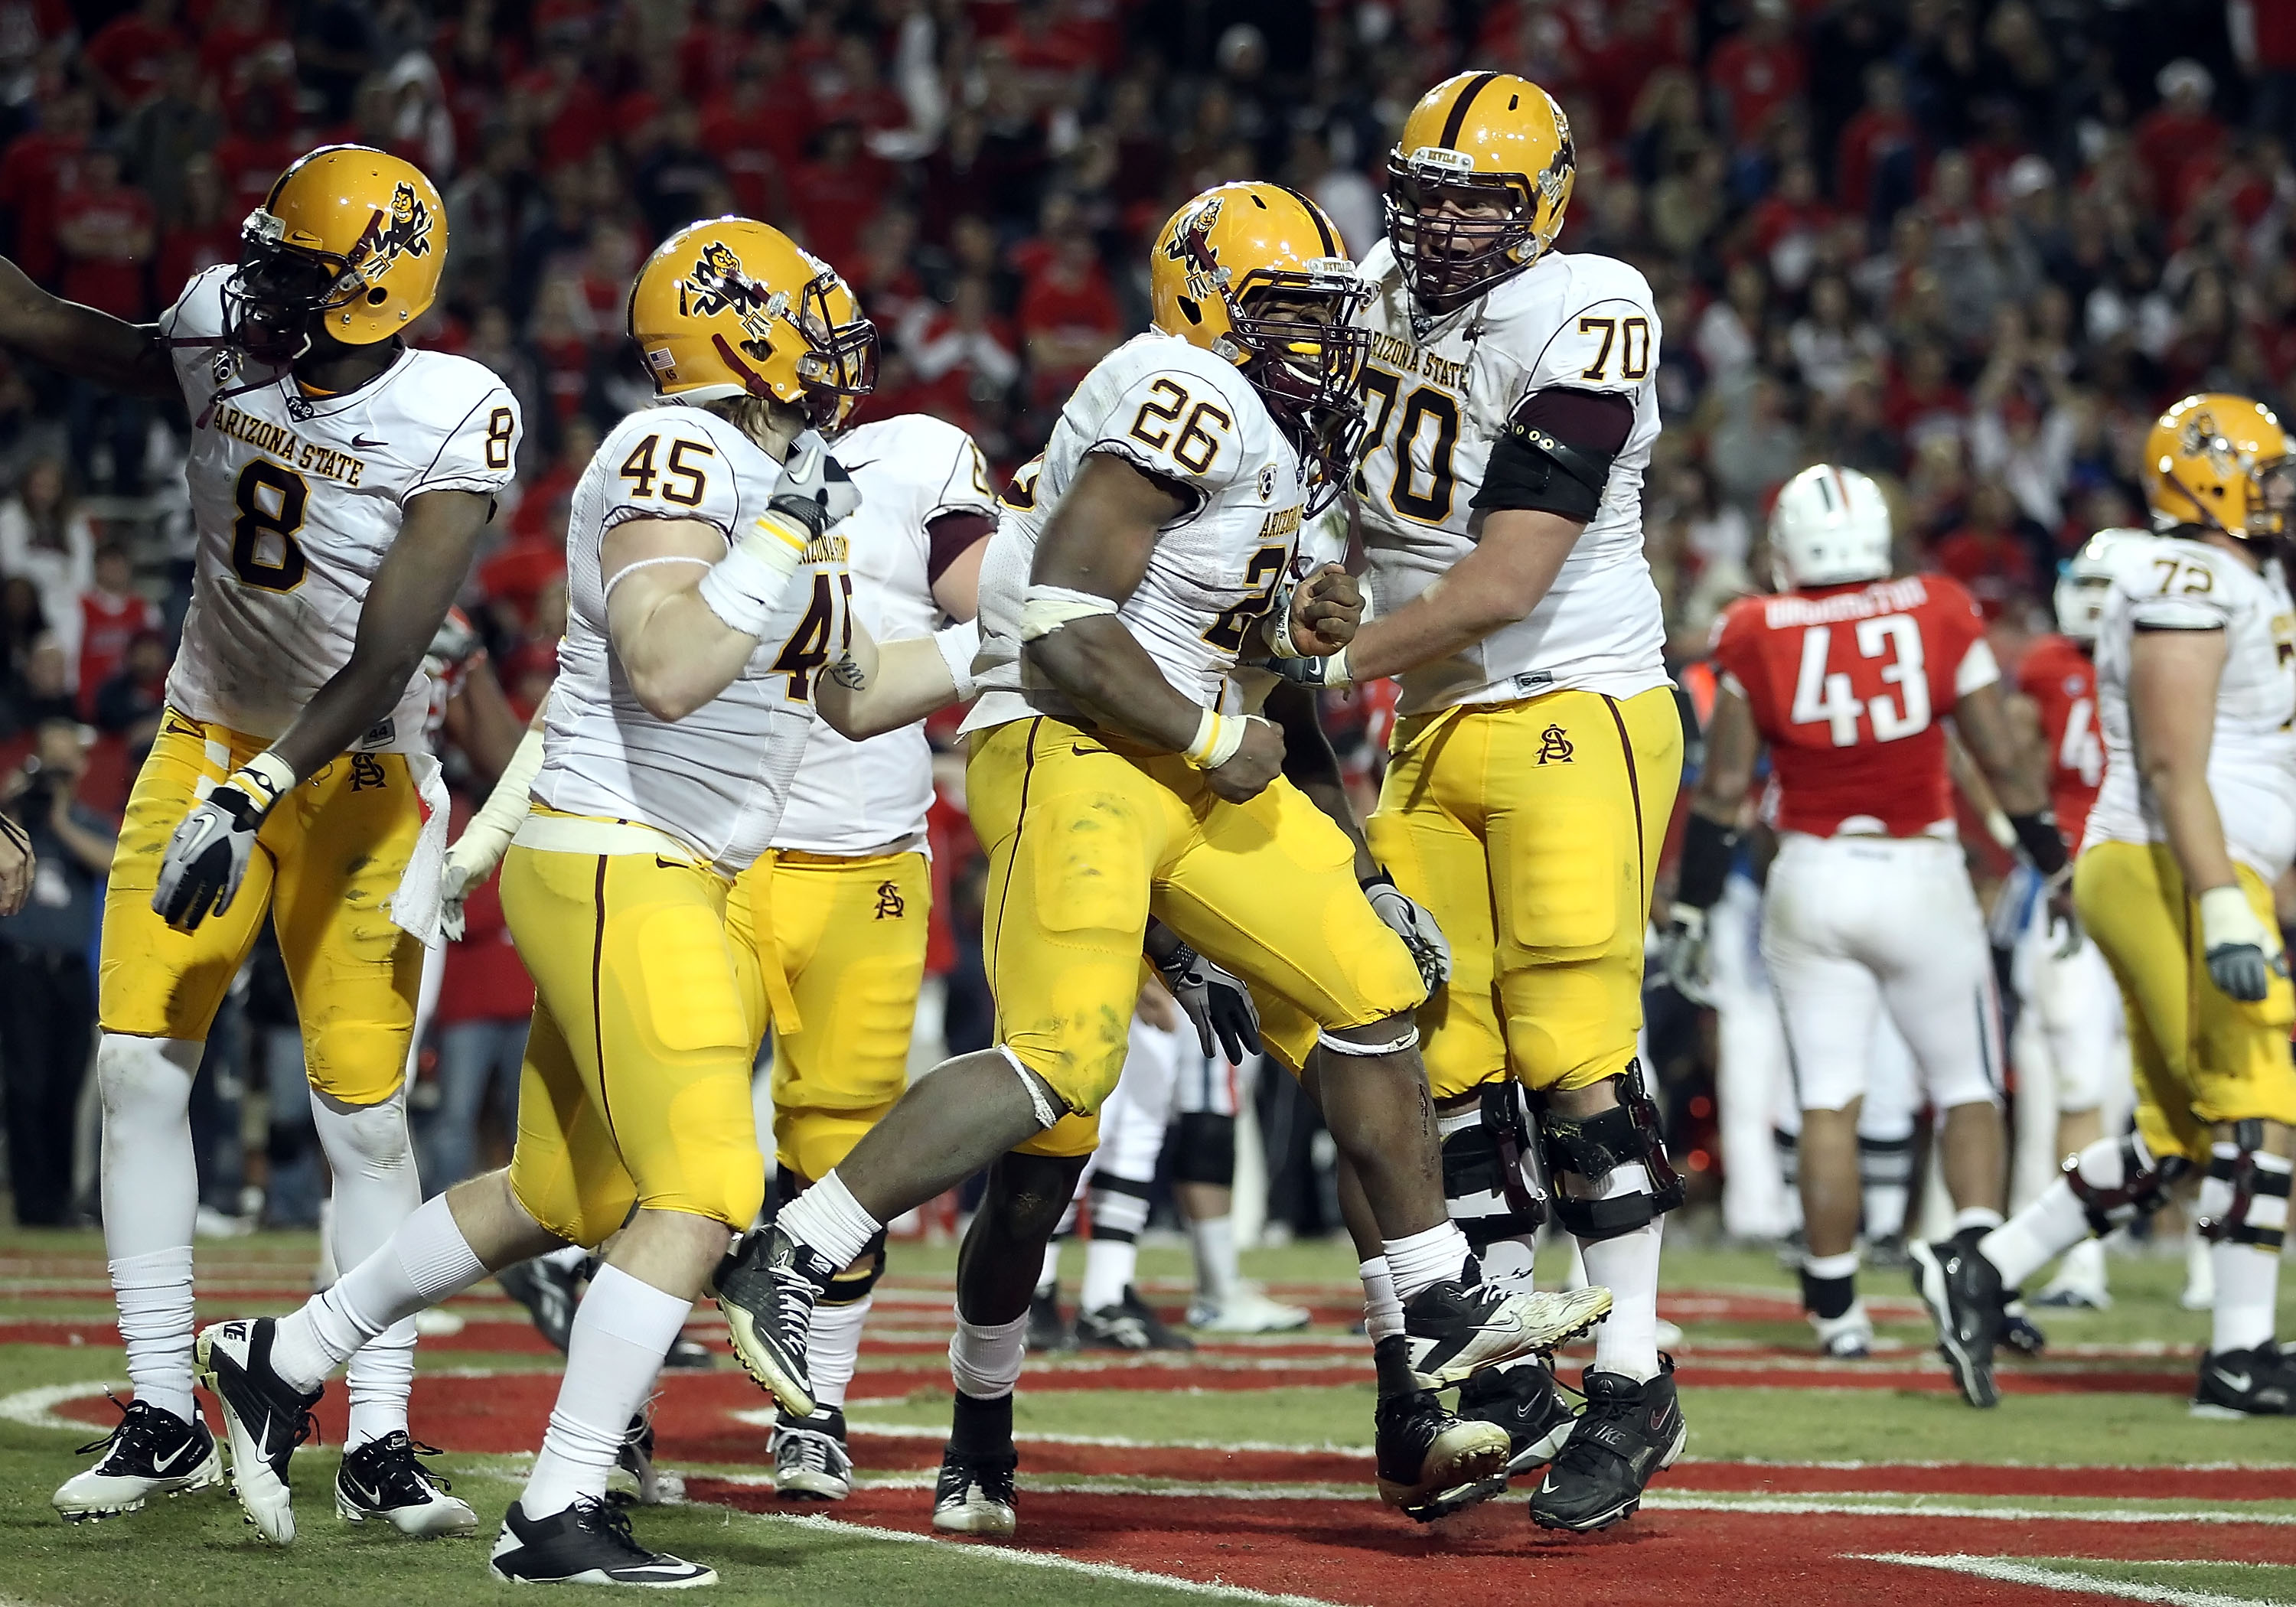 TUCSON, AZ - DECEMBER 02:  Runningback Cameron Marshall #26 of the Arizona State Sun Devils scores a rushing touchdown during the college football game at Arizona Stadium on December 2, 2010 in Tucson, Arizona. The Sun Devils defeated the Wildcats 30-29 i